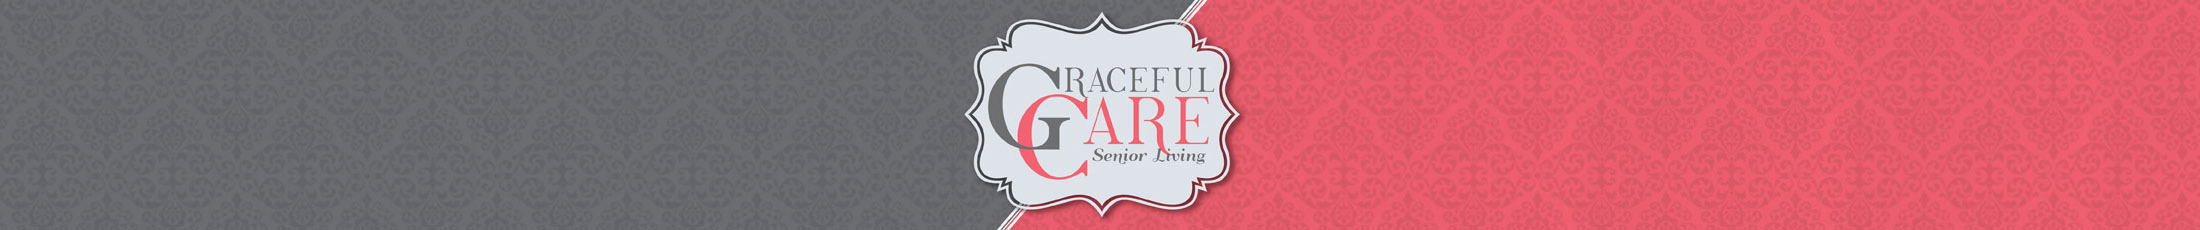 Graceful Care Senior Living - logo